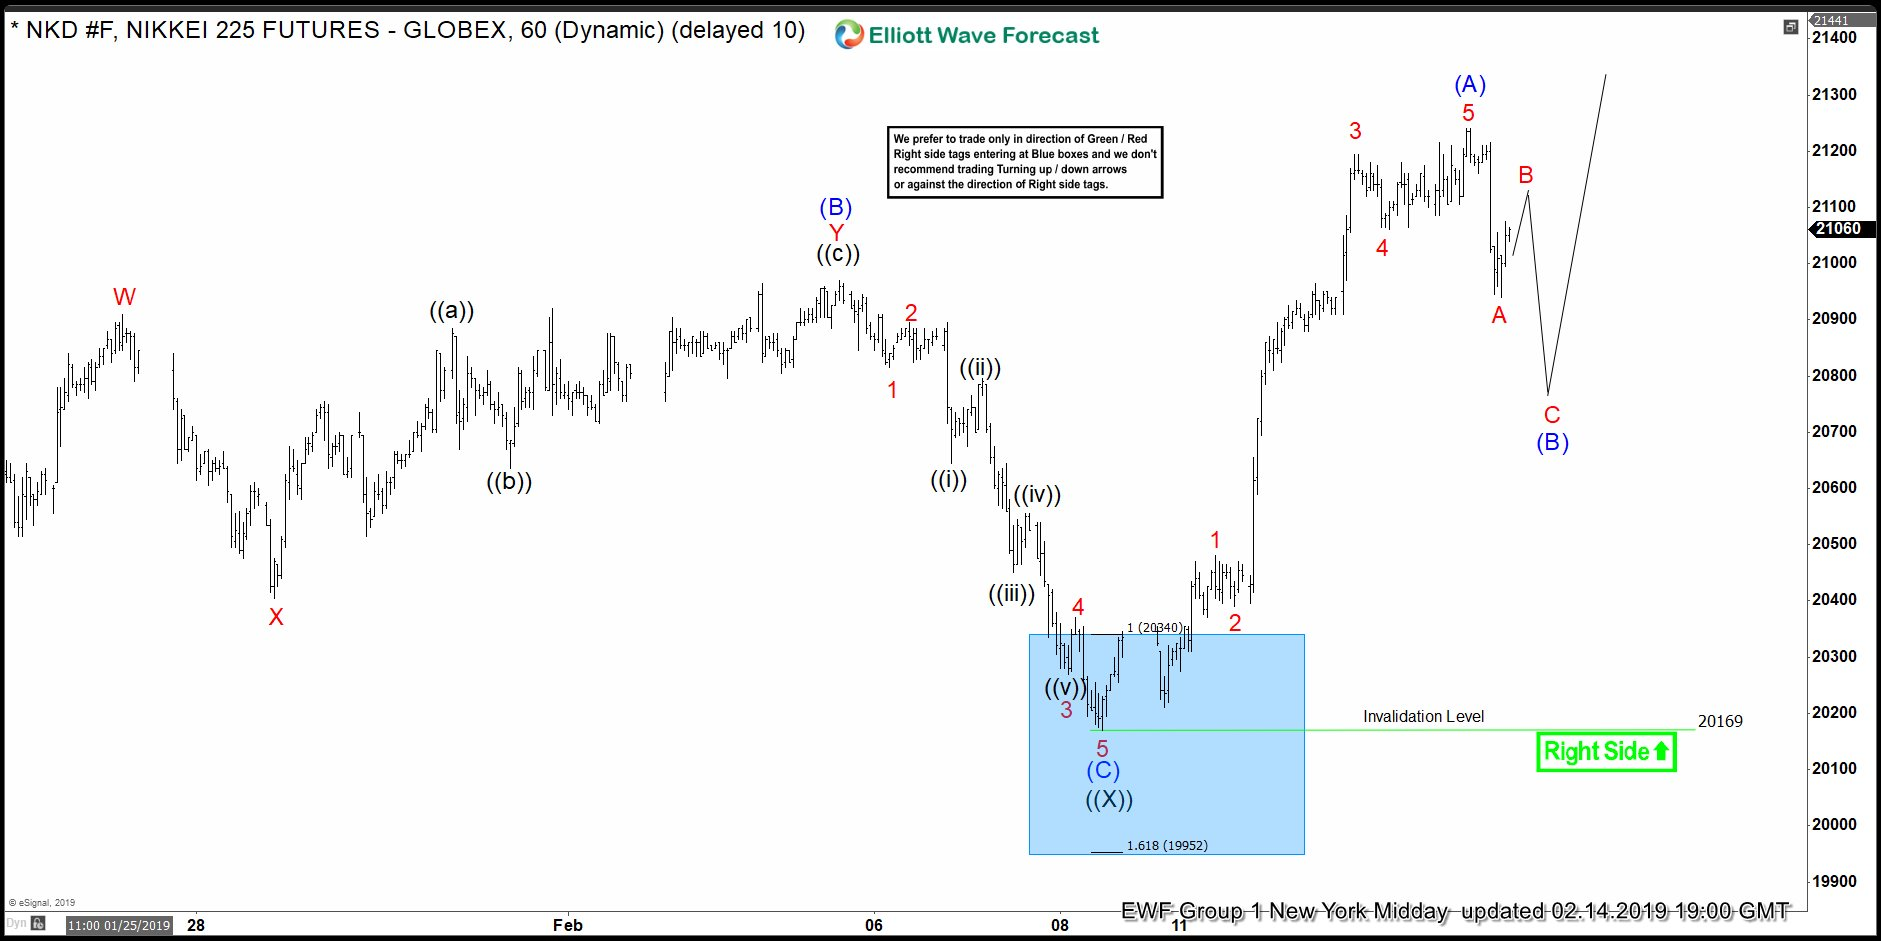 Nikkei Elliott Wave Zigzag Pattern Within February Cycle